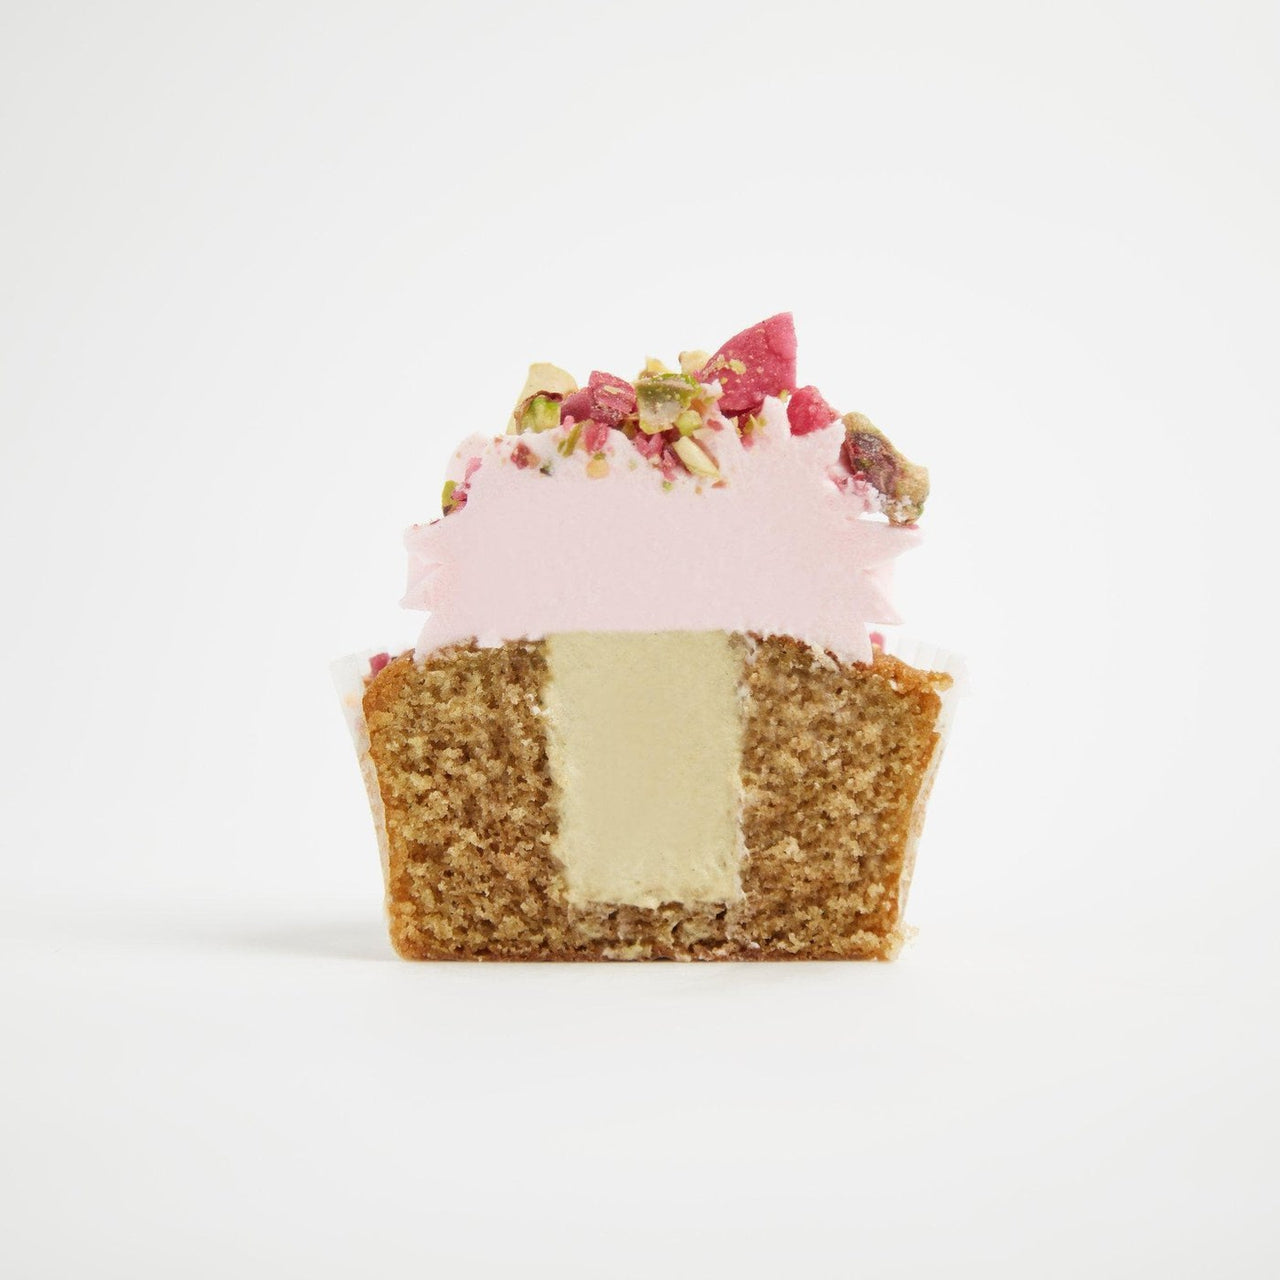 Rose & Pistachio Cupcakes by Crumbs & Doilies